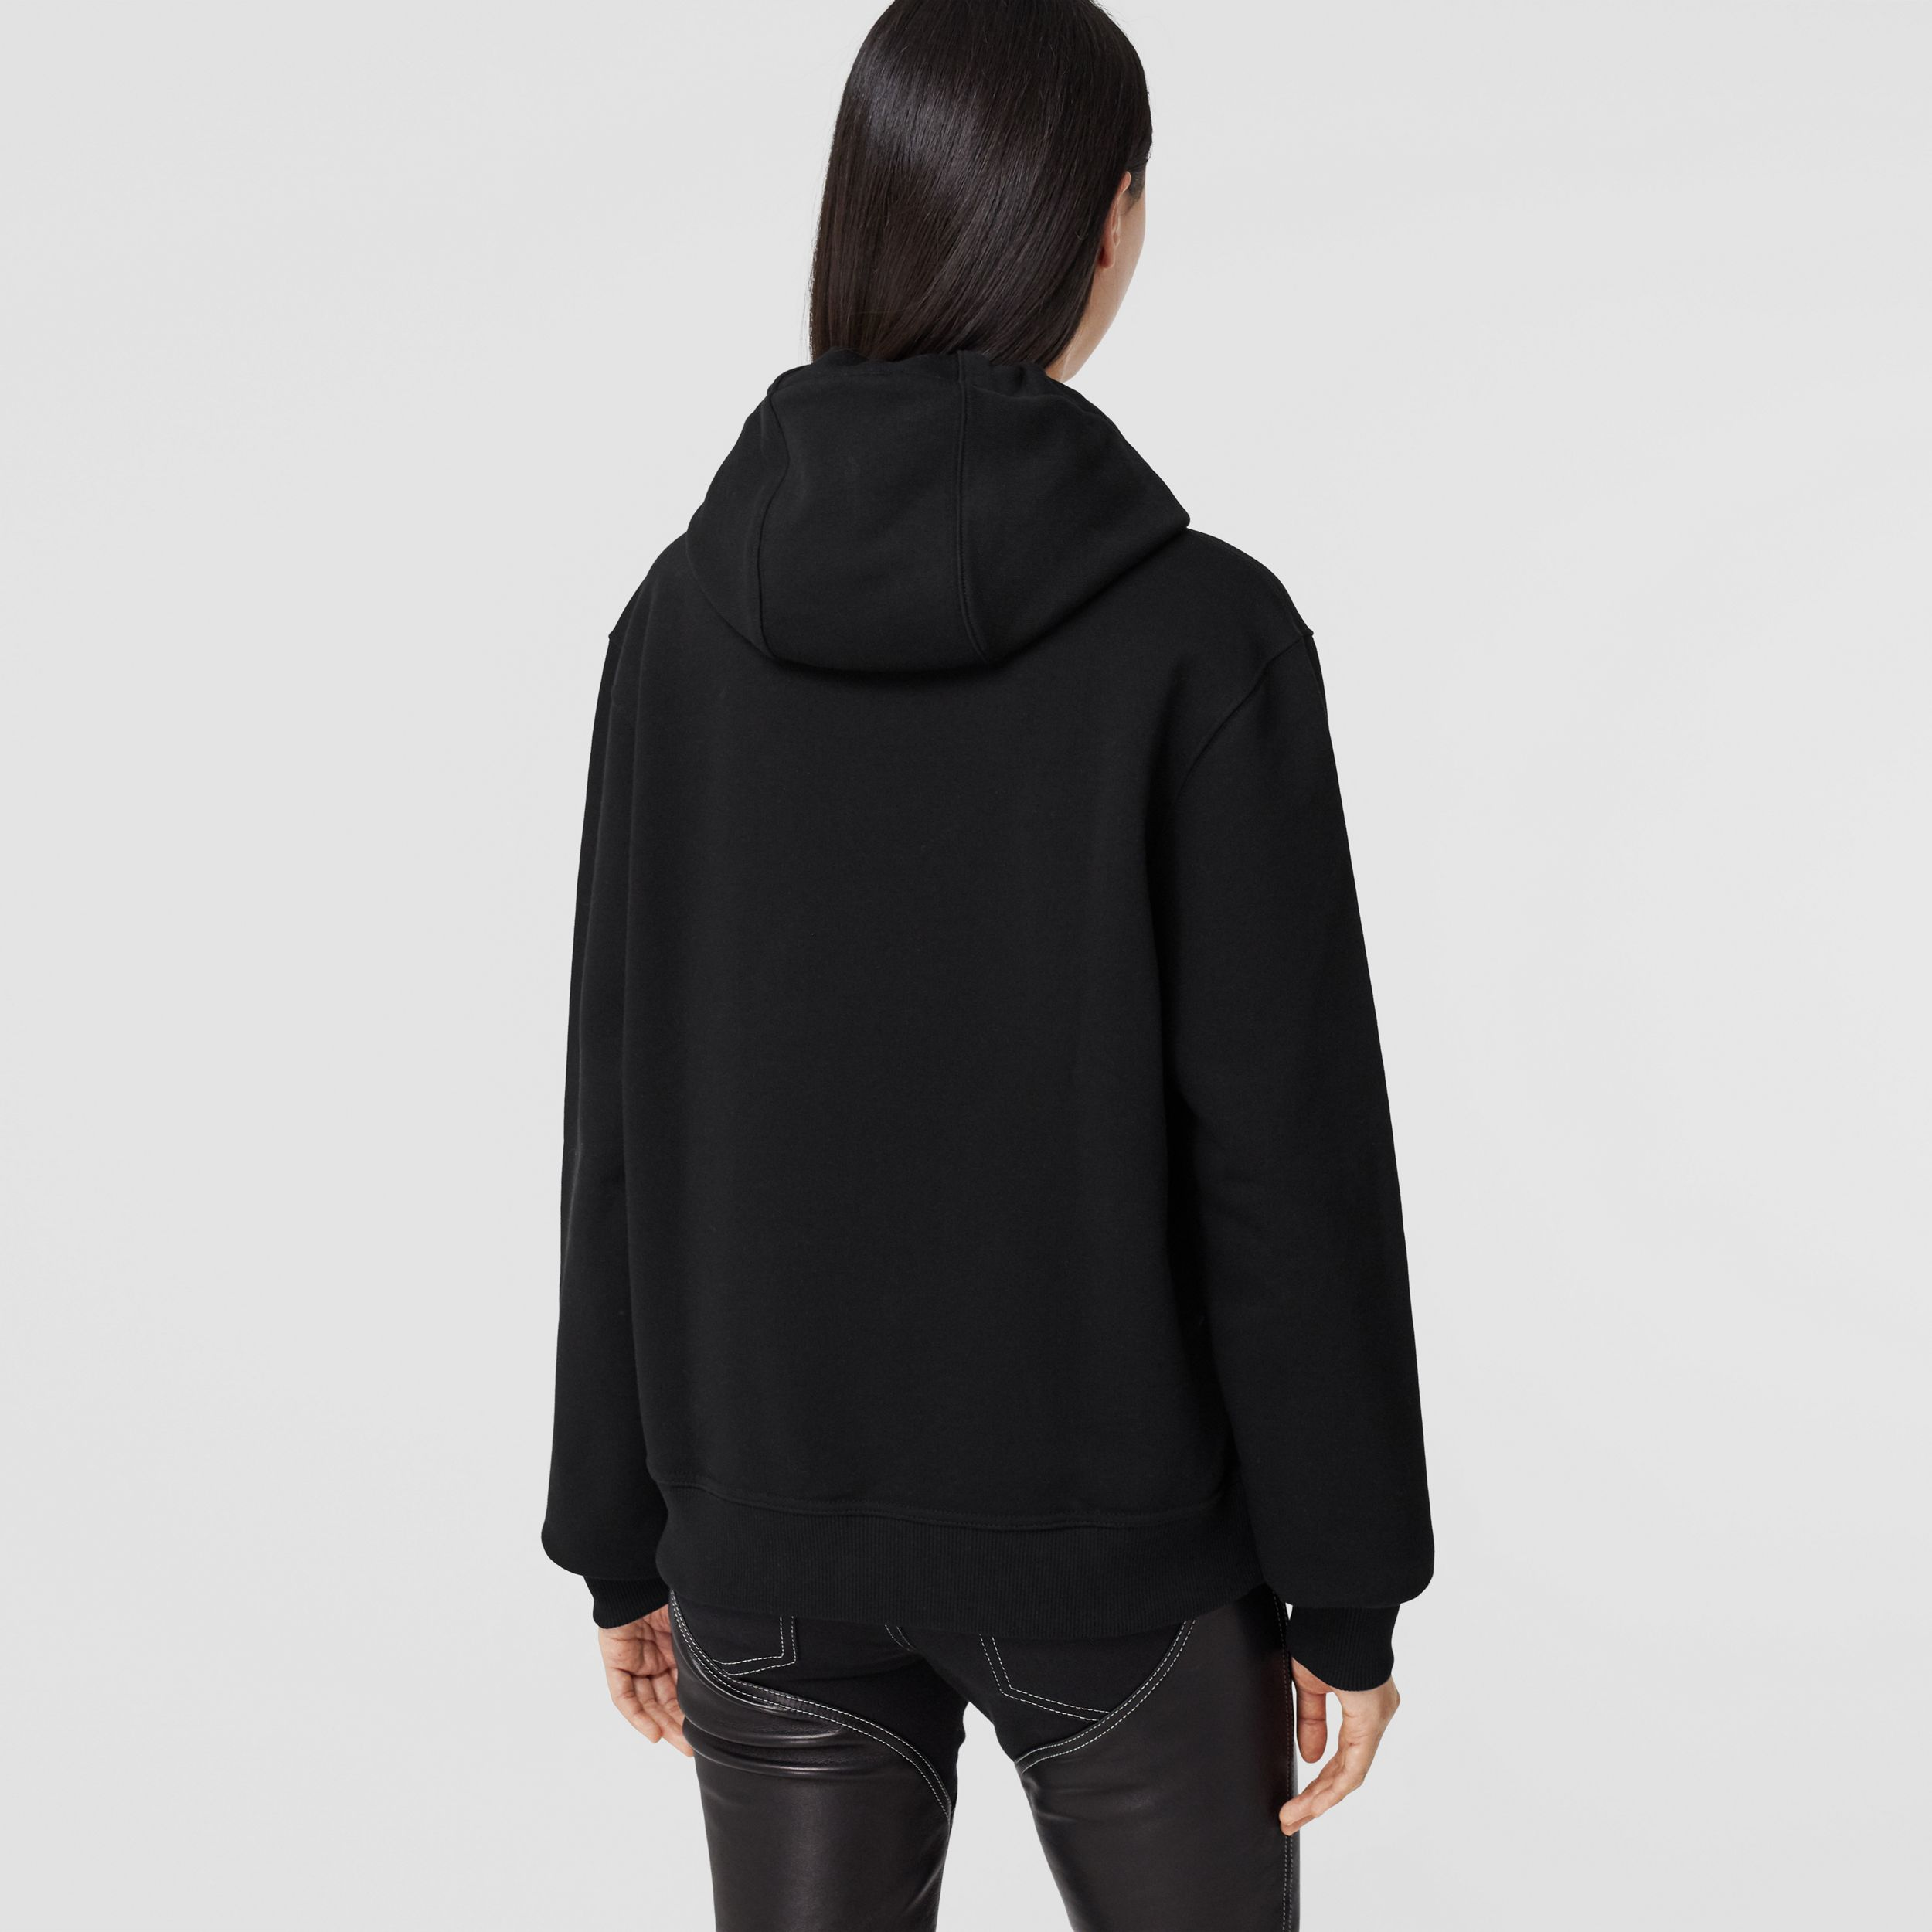 Shark Print Cotton Oversized Hoodie in Black - Women | Burberry United Kingdom - 3